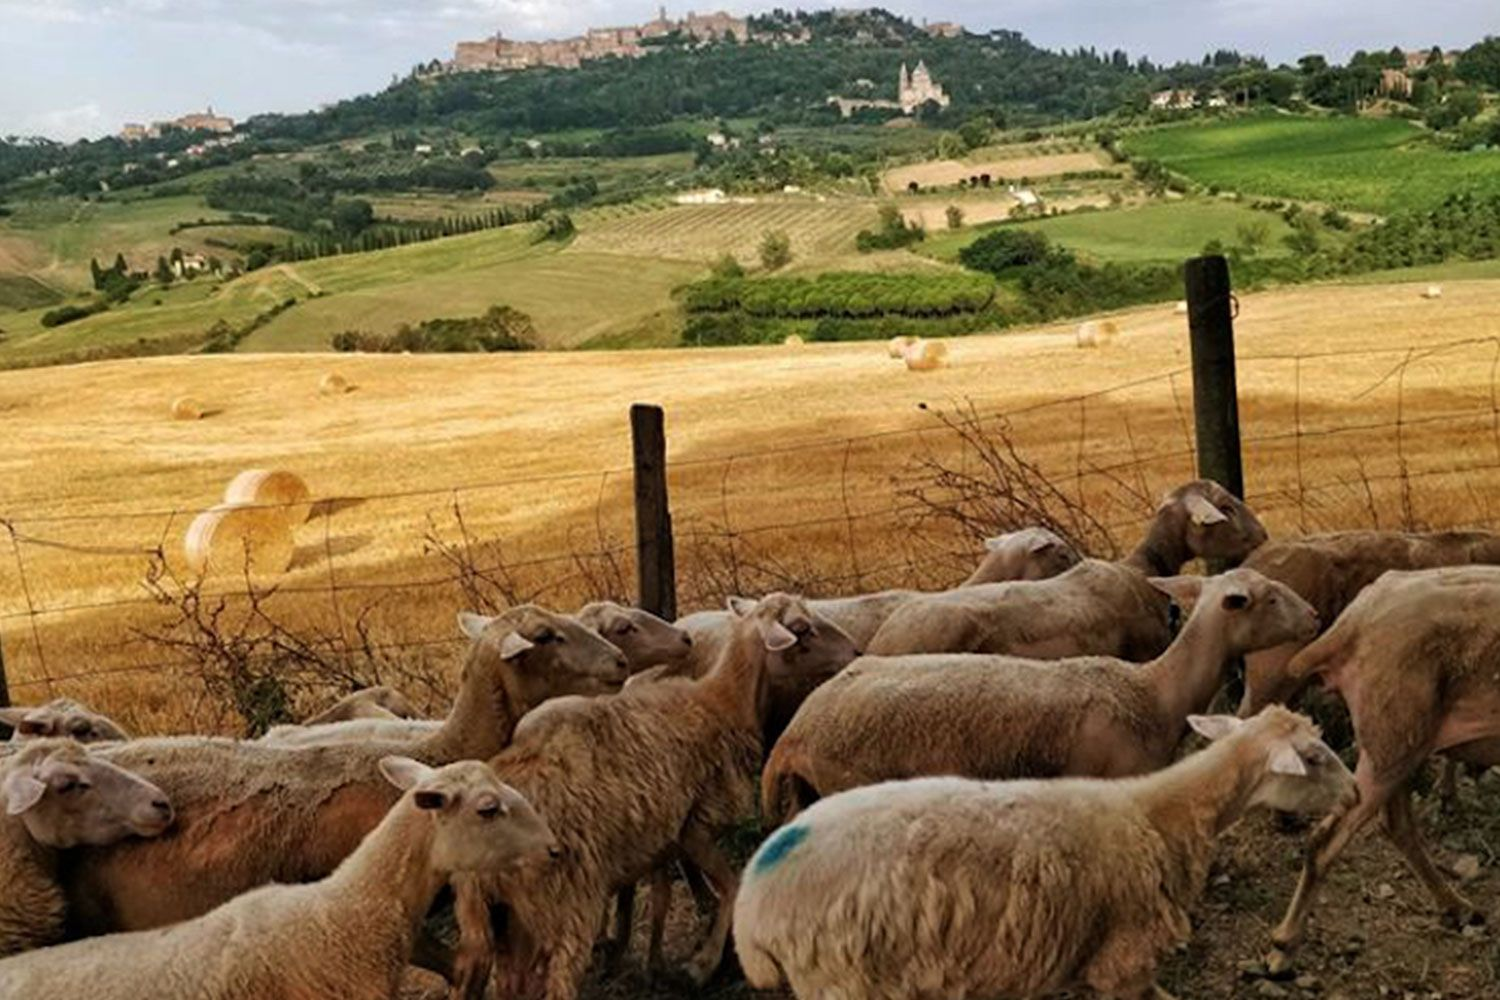 Sheep on their way to be milked with Montepulciano in the background.